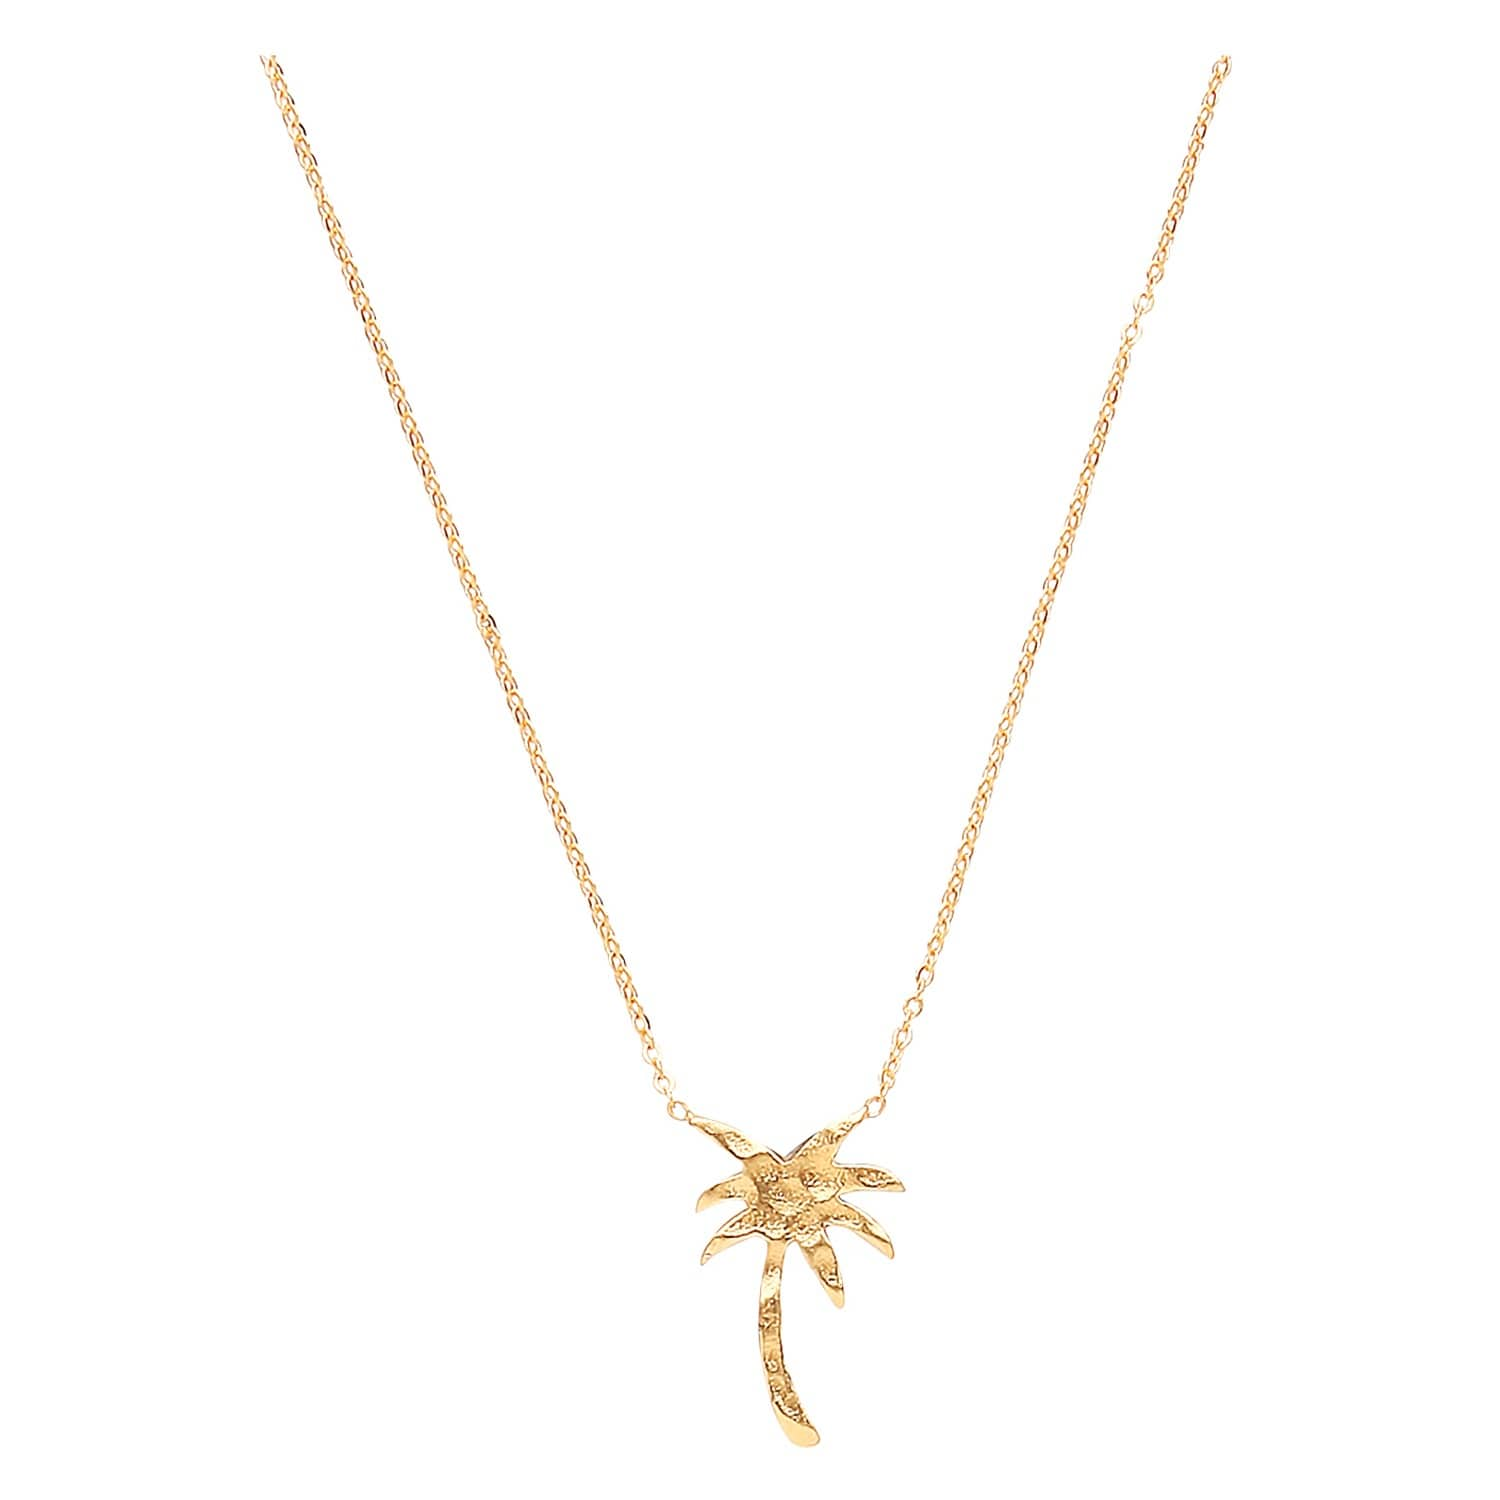 necklace star sveaas gold shop small tilly jewellery